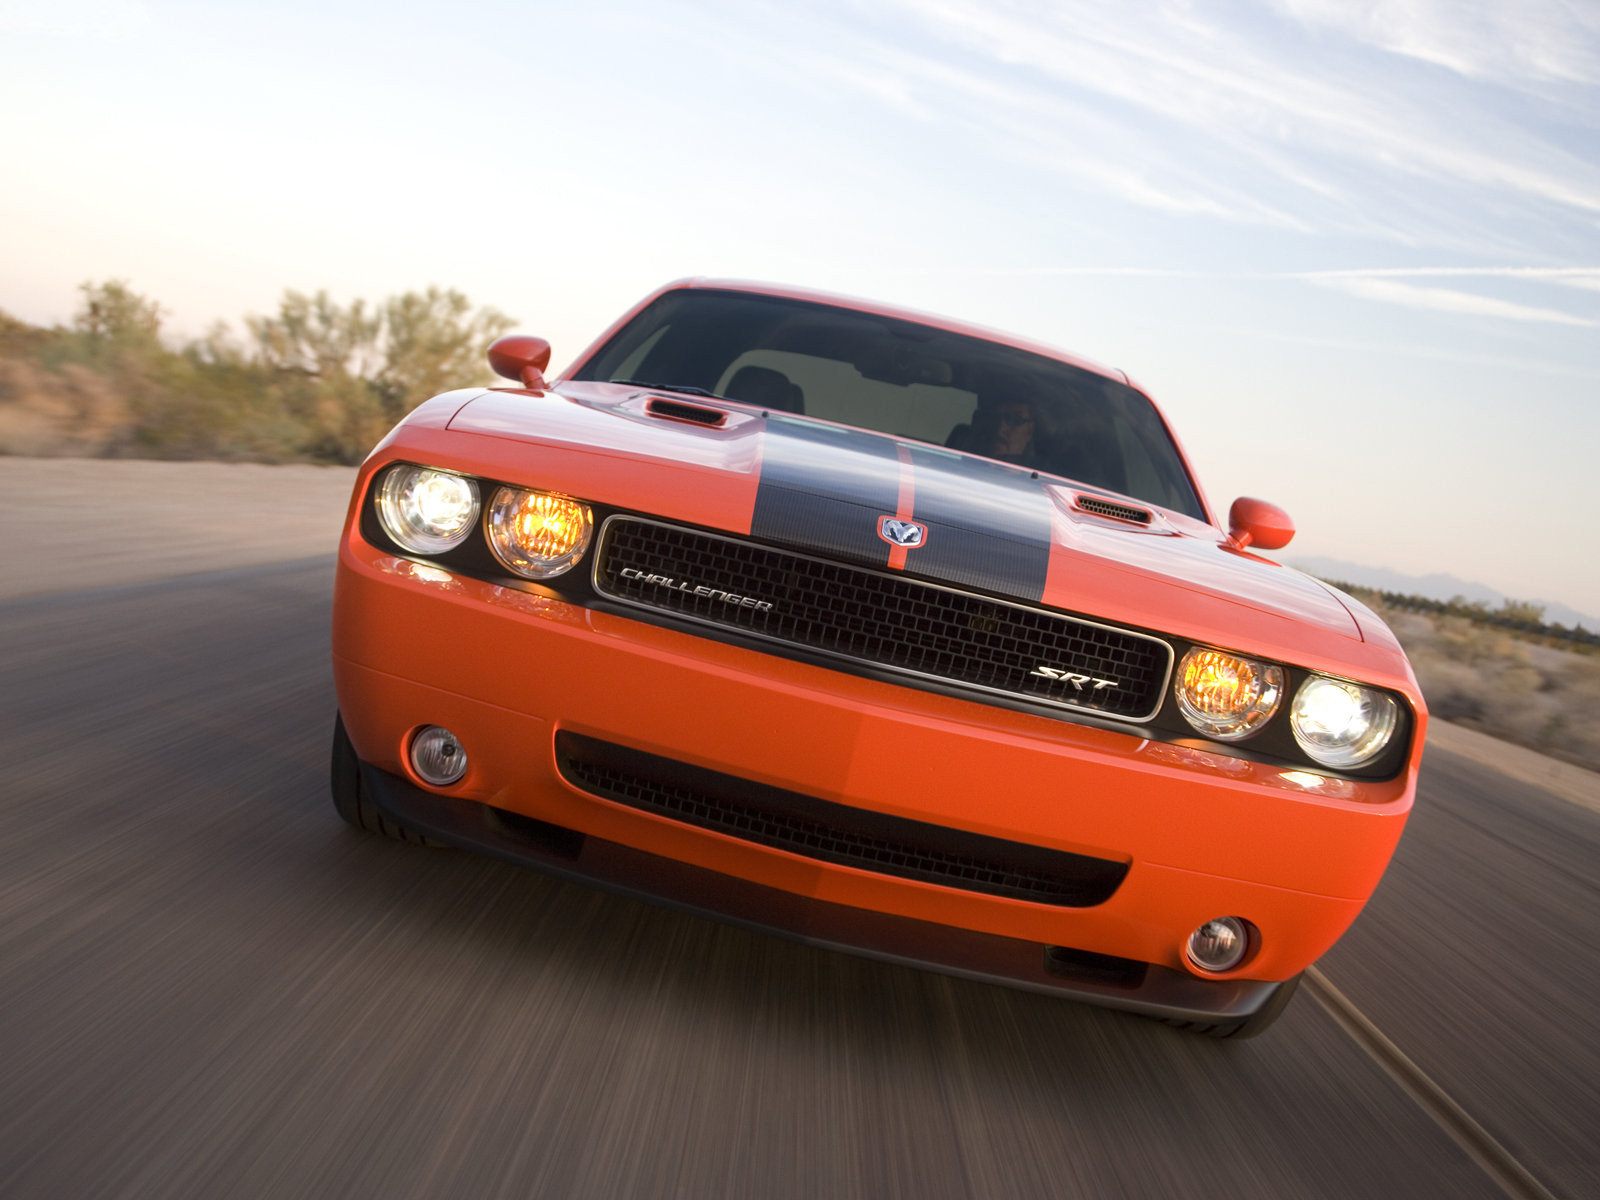 Dodge Challenger SRT-8 - 1600x1200